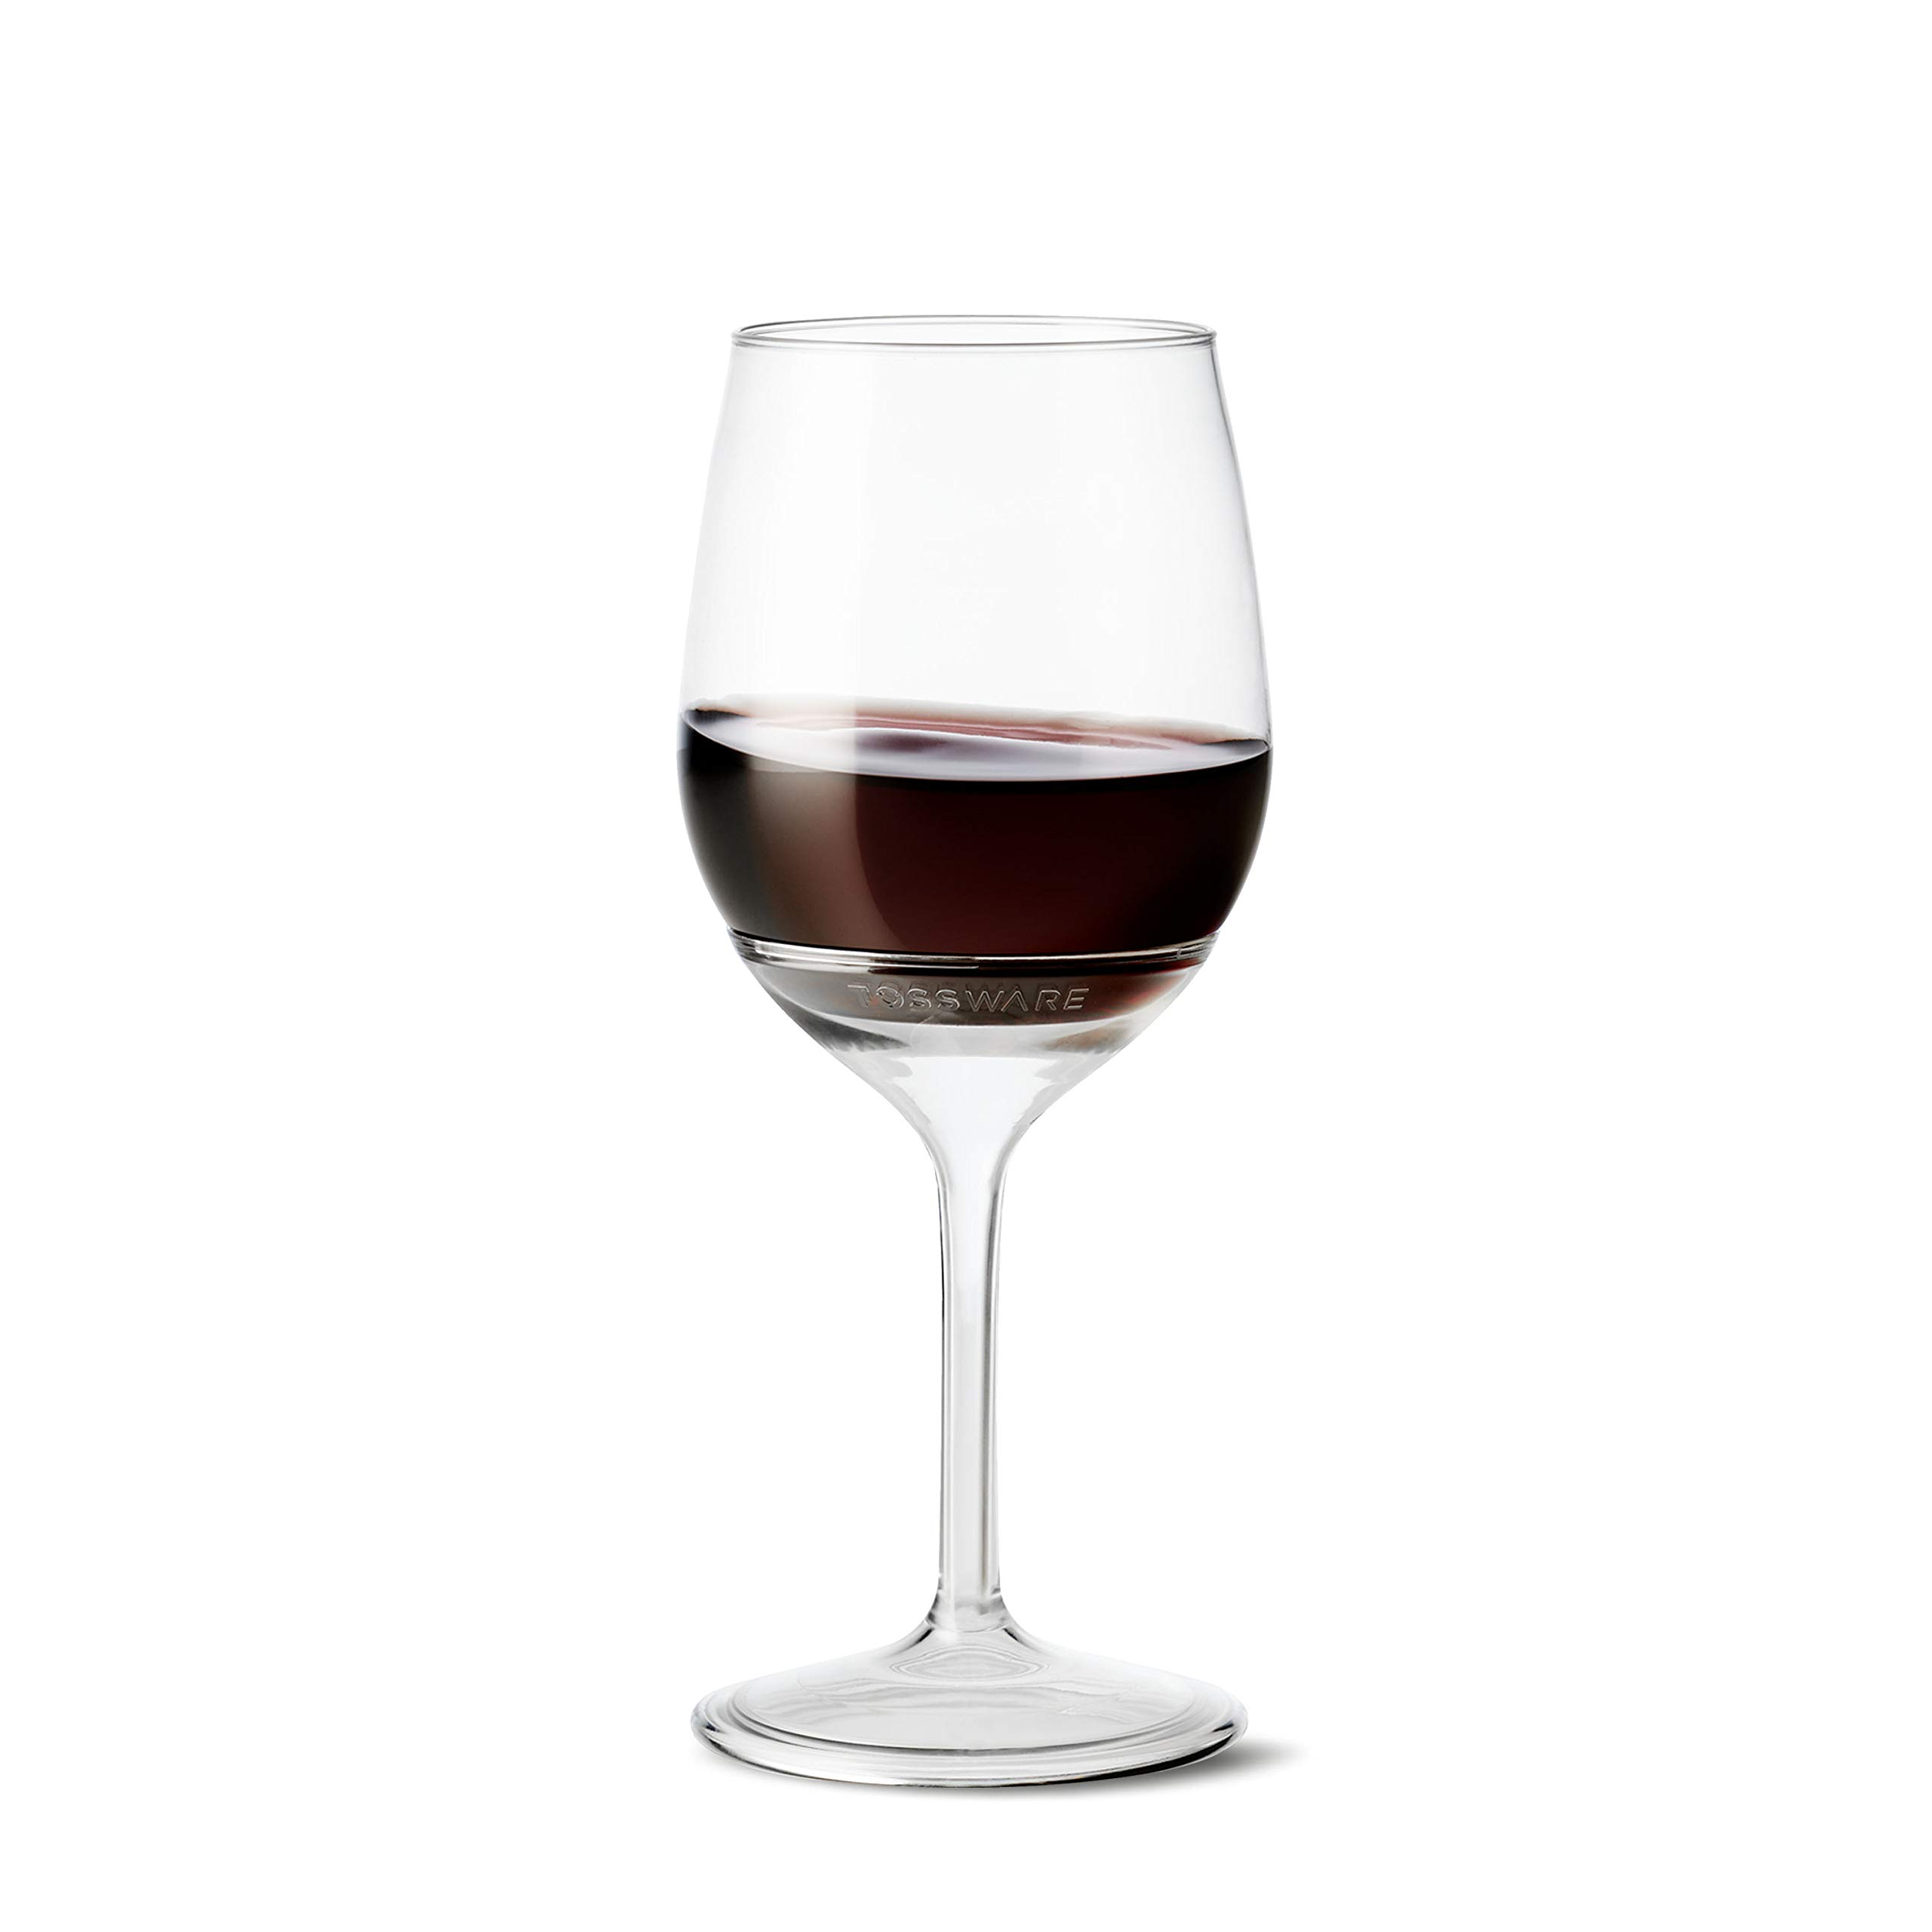 TOSSWARE 14oz Stemmed Vino- recyclable wine plastic cup -SET OF 12- detachable stem, shatterproof, and BPA-free wine glasses by TOSSWARE